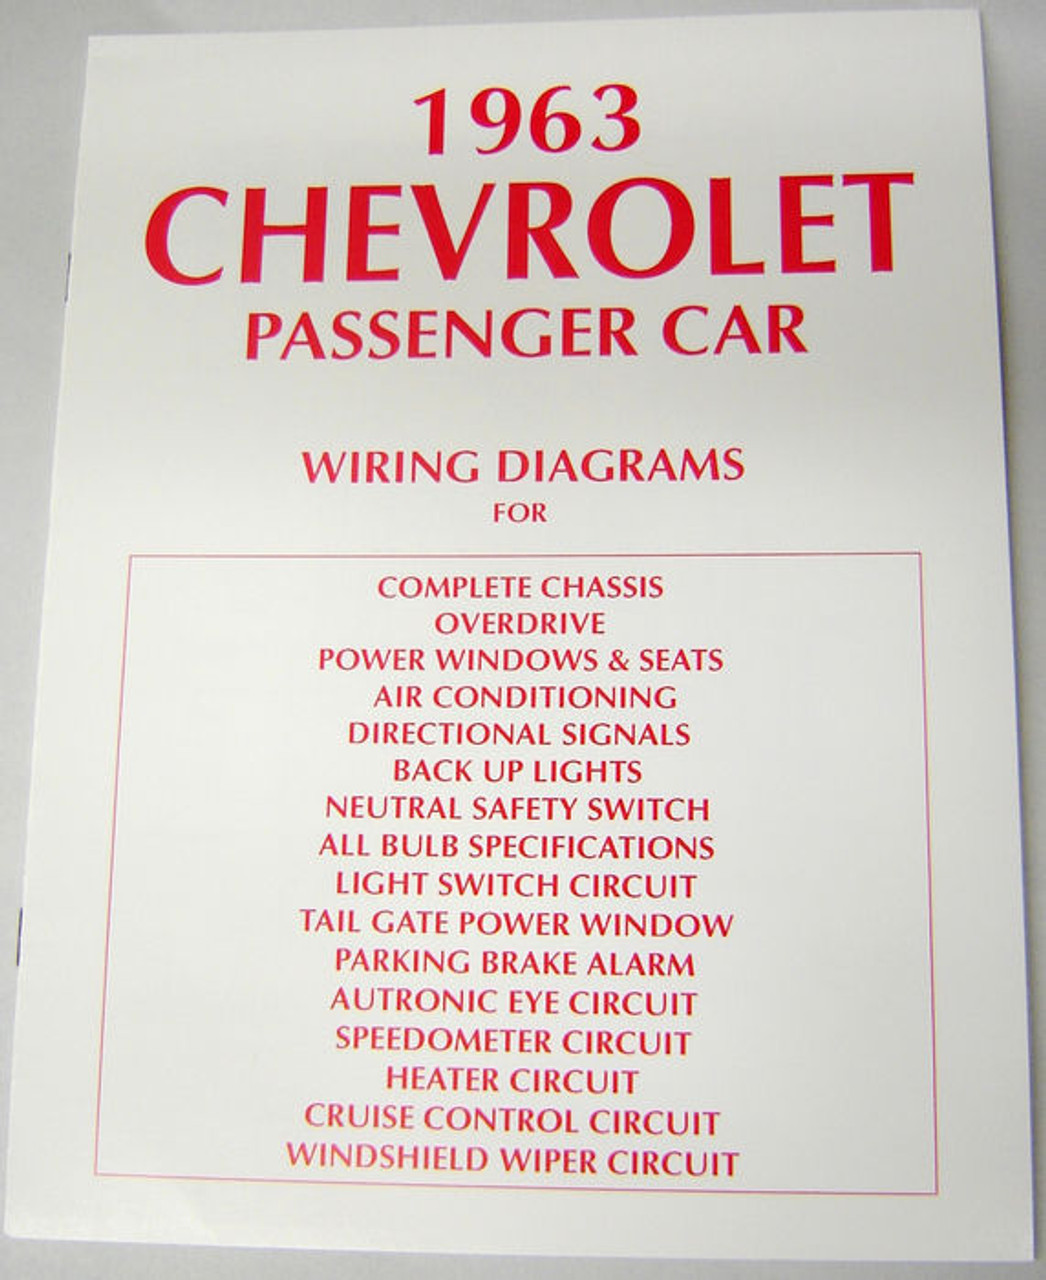 L1016_zpsdlq6nmgy__31214.1443480568?c=2 63 chevy impala electrical wiring diagram manual 1963 i 5 1963 impala headlight switch wiring diagram at couponss.co